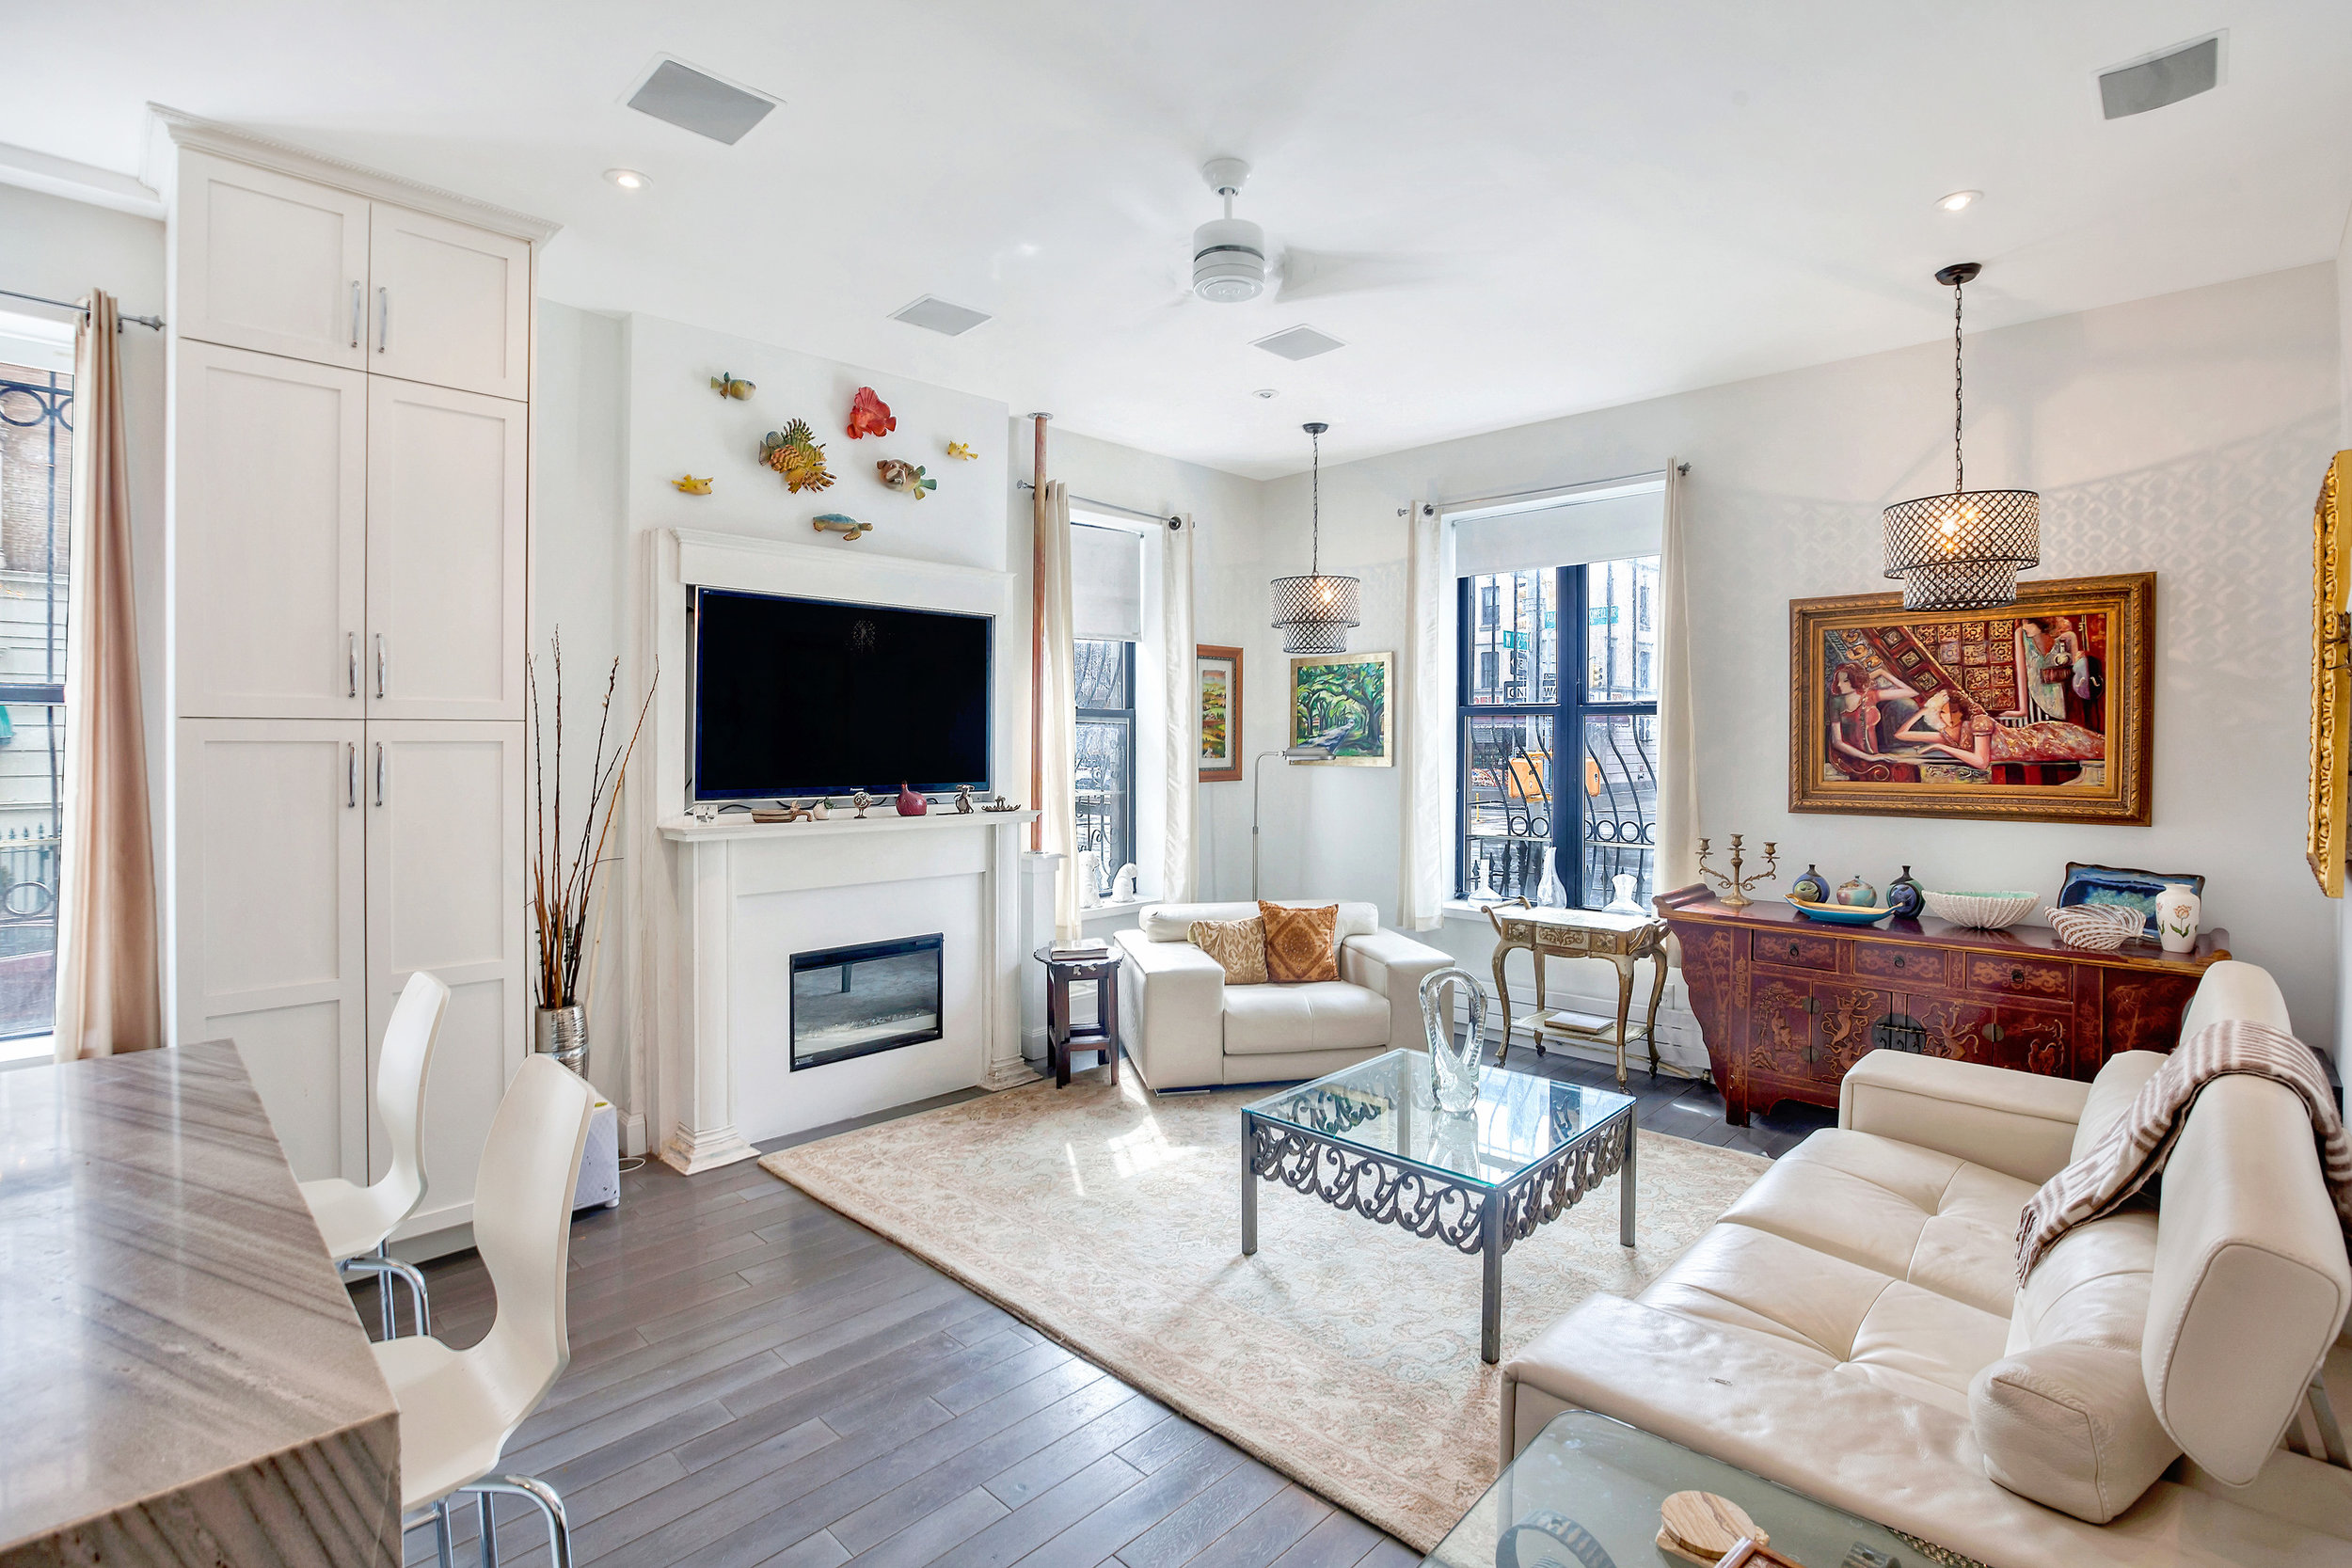 1845 7th Ave. #1A - 2 BD  |  2 BA  |  $1,395,000